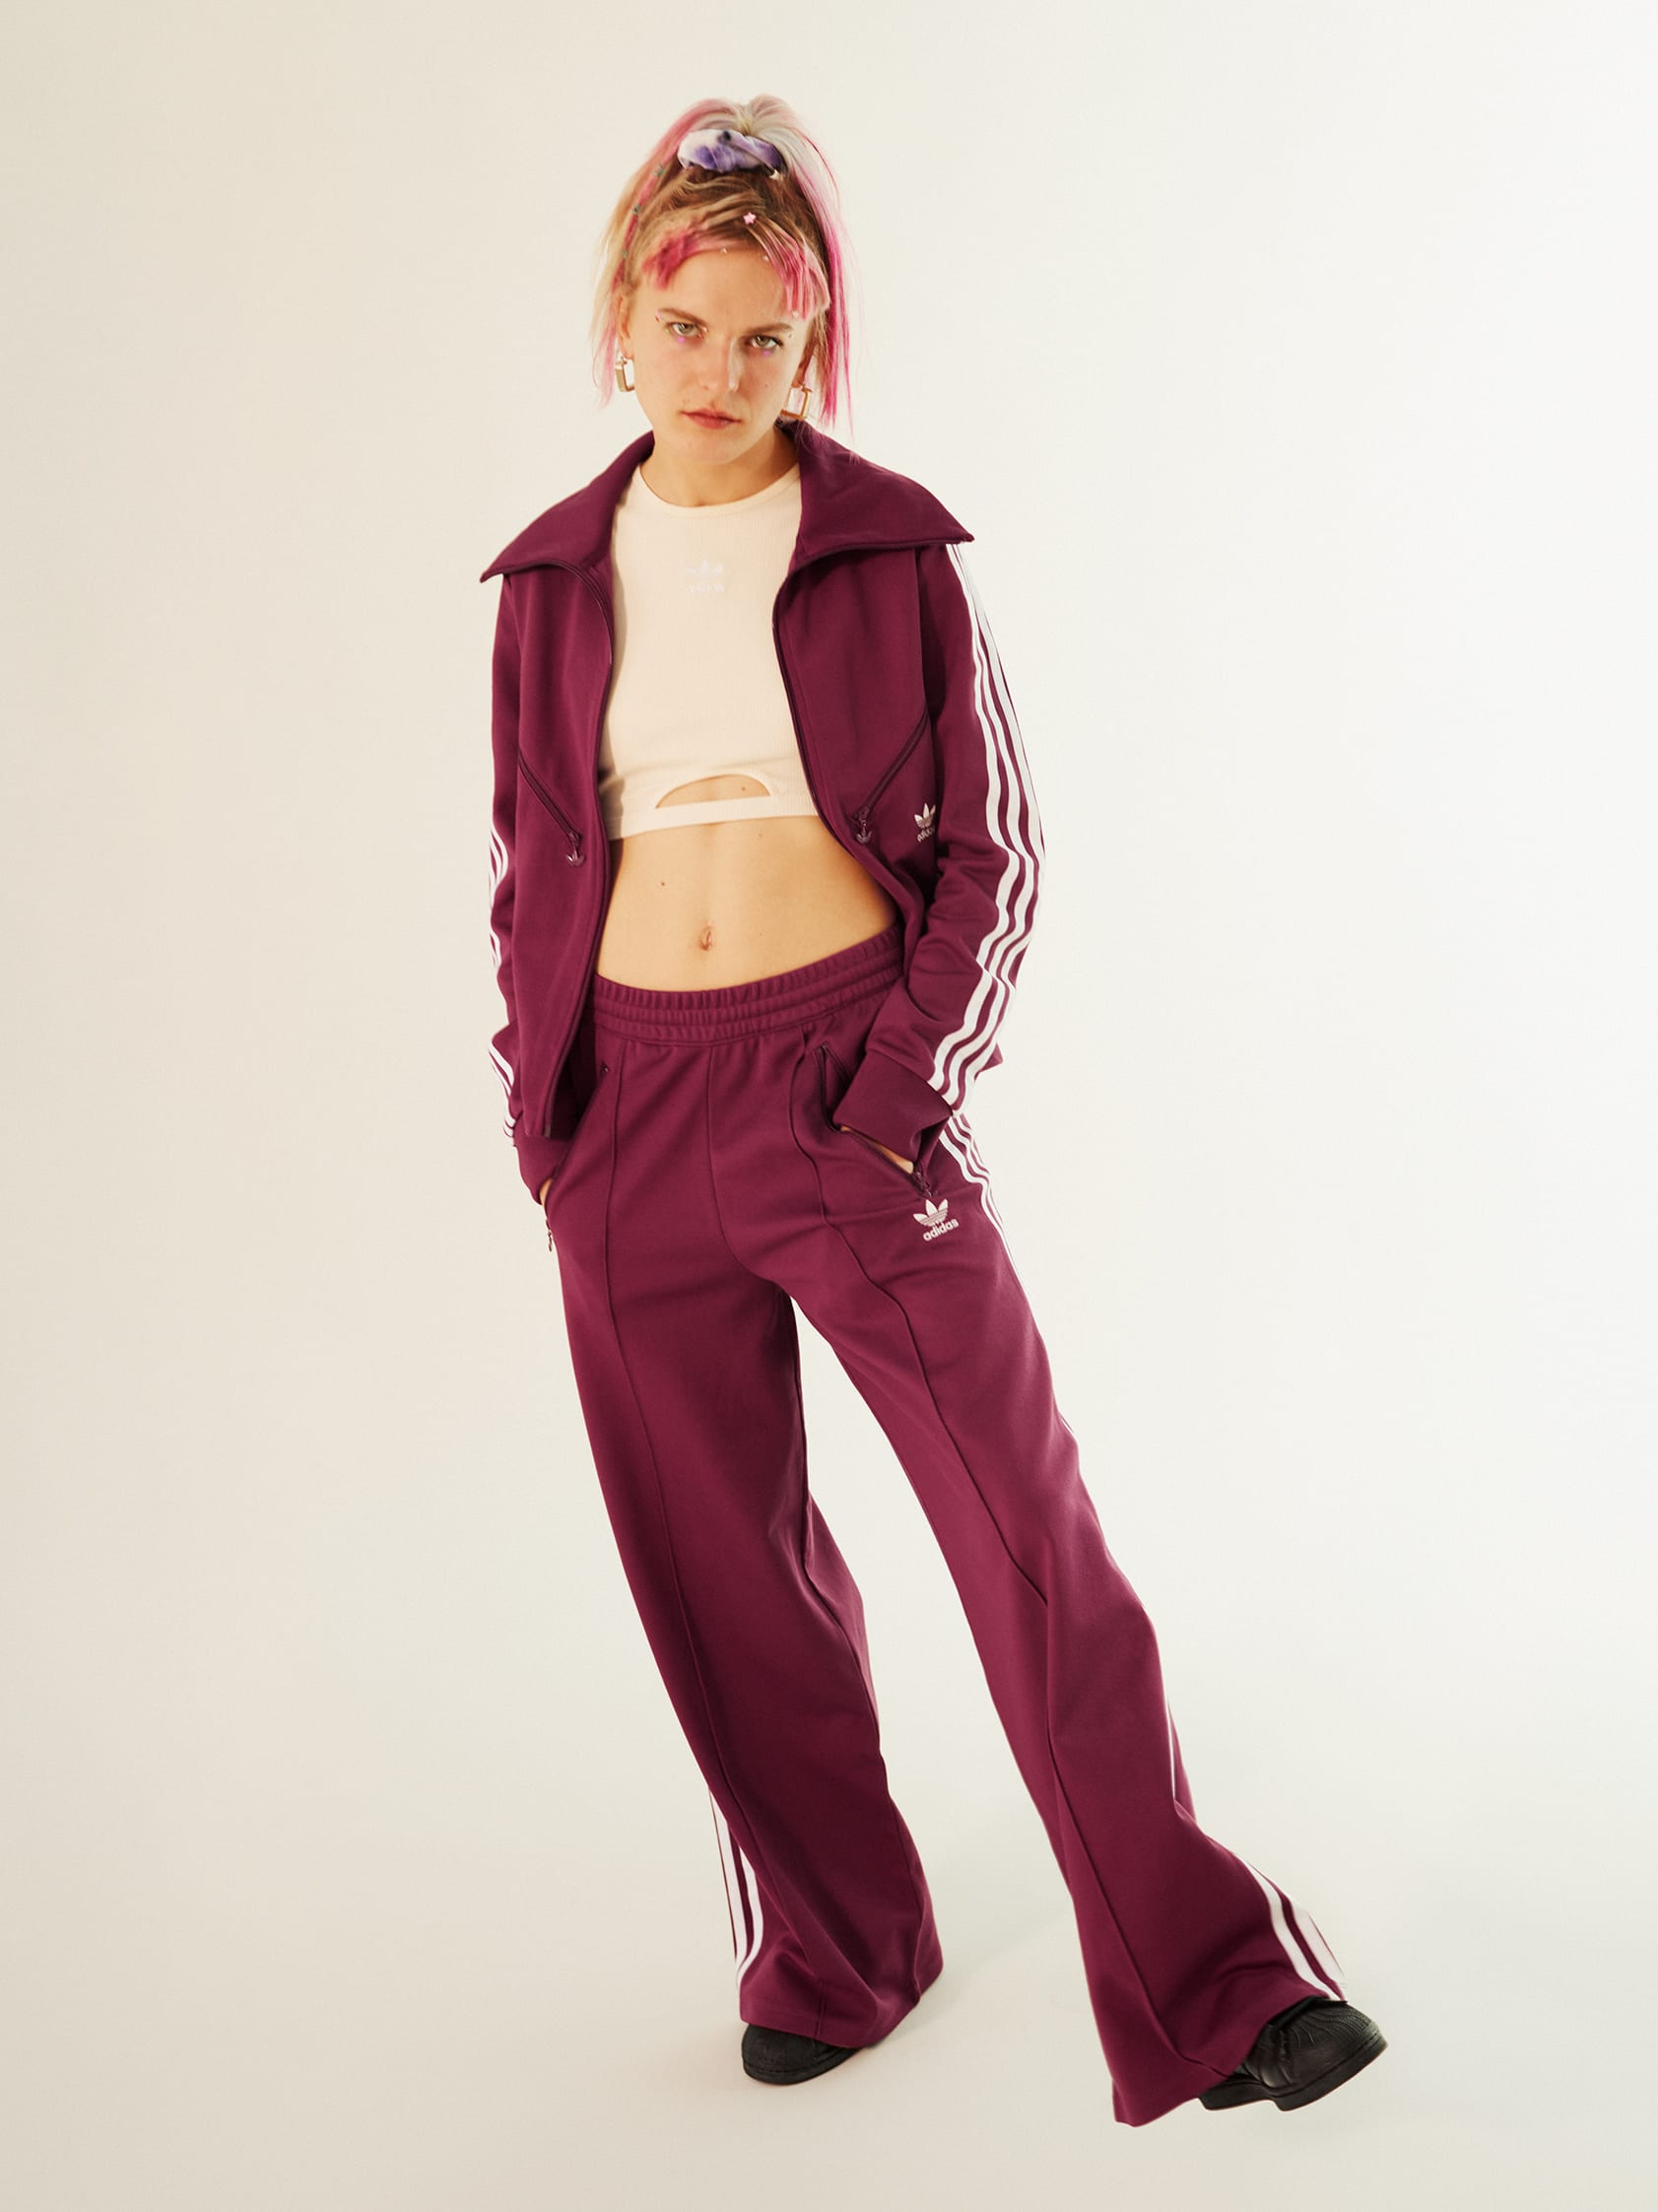 Stylish woman wearing a classic dark red adicolor tracksuit.